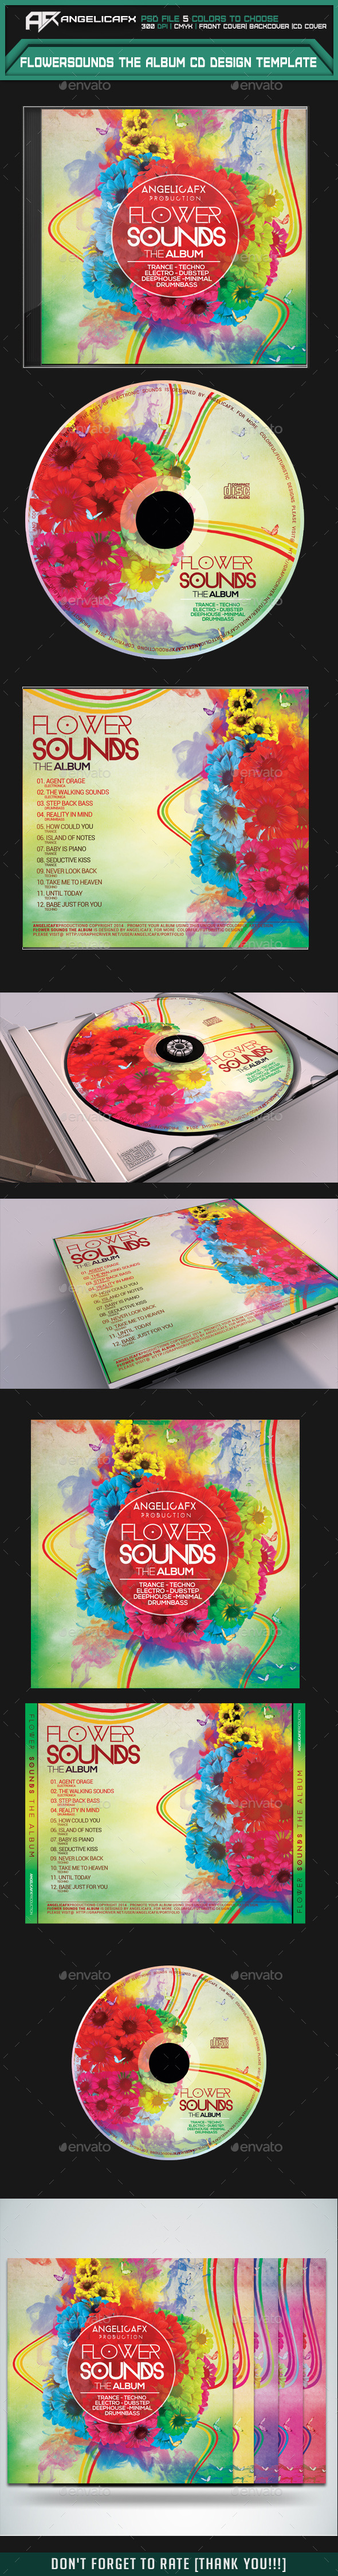 GraphicRiver Flower Sounds The Album CD Design Template 8967112